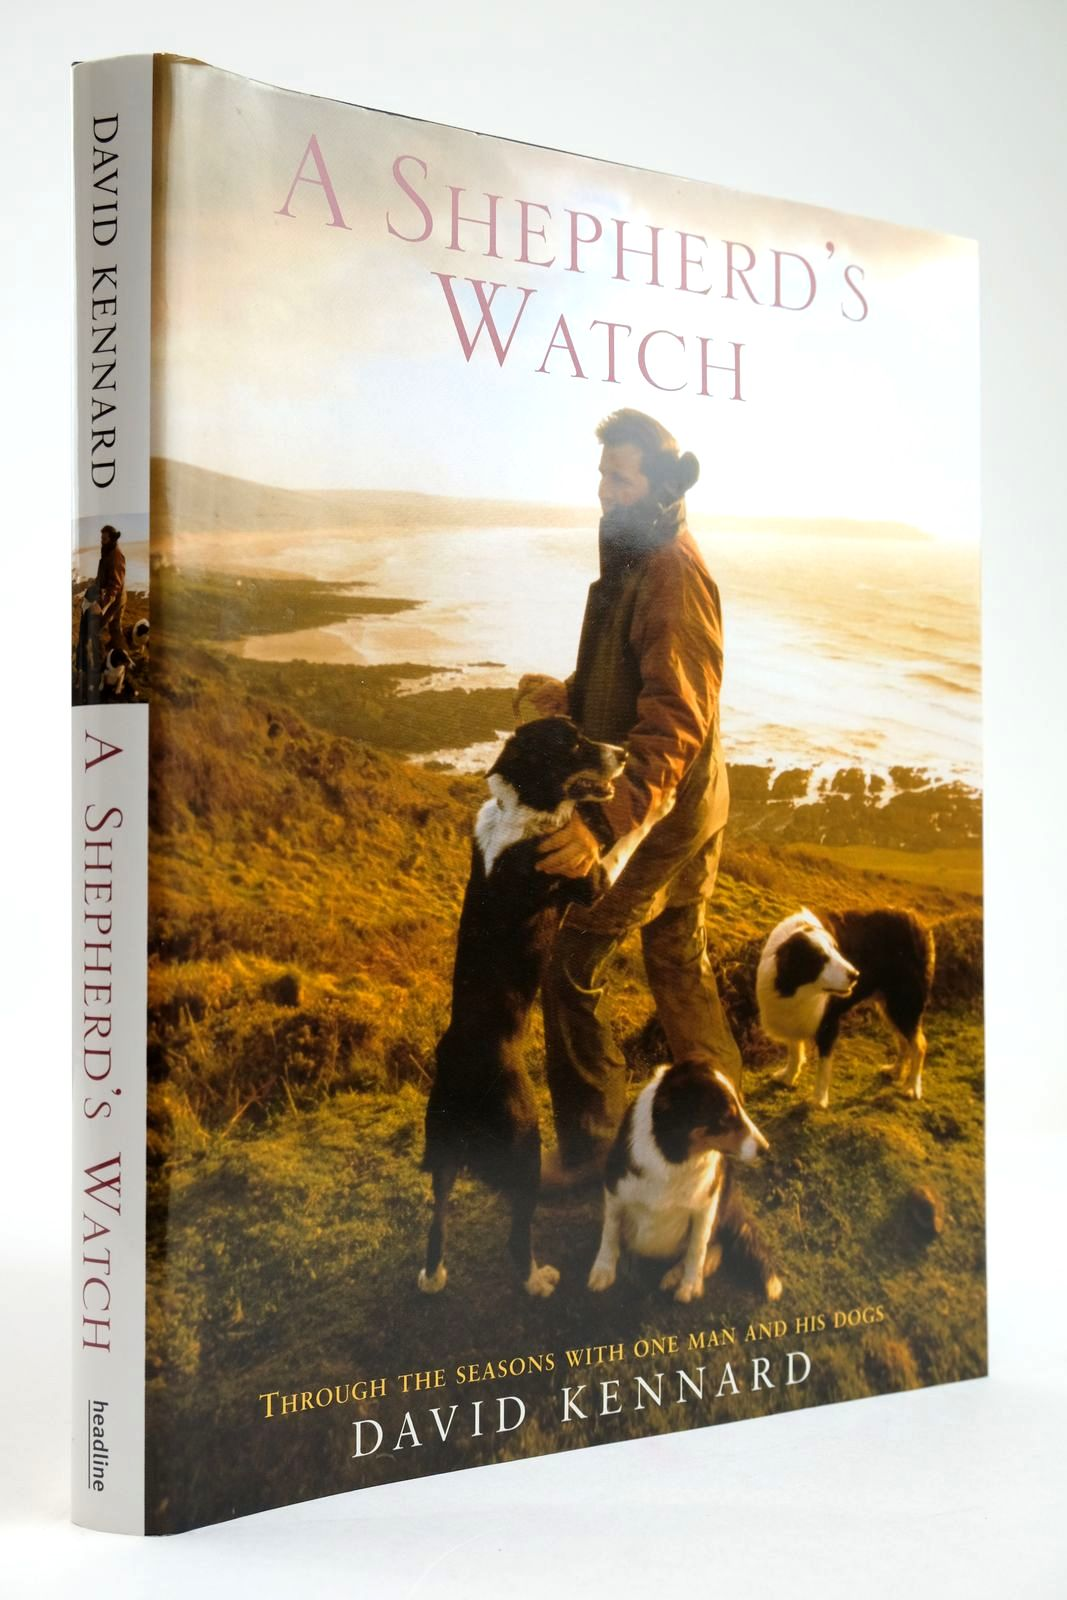 Photo of A SHEPHERD'S WATCH: THROUGH THE SEASONS WITH ONE MAN AND HIS DOGS written by Kennard, David published by Headline (STOCK CODE: 2133556)  for sale by Stella & Rose's Books